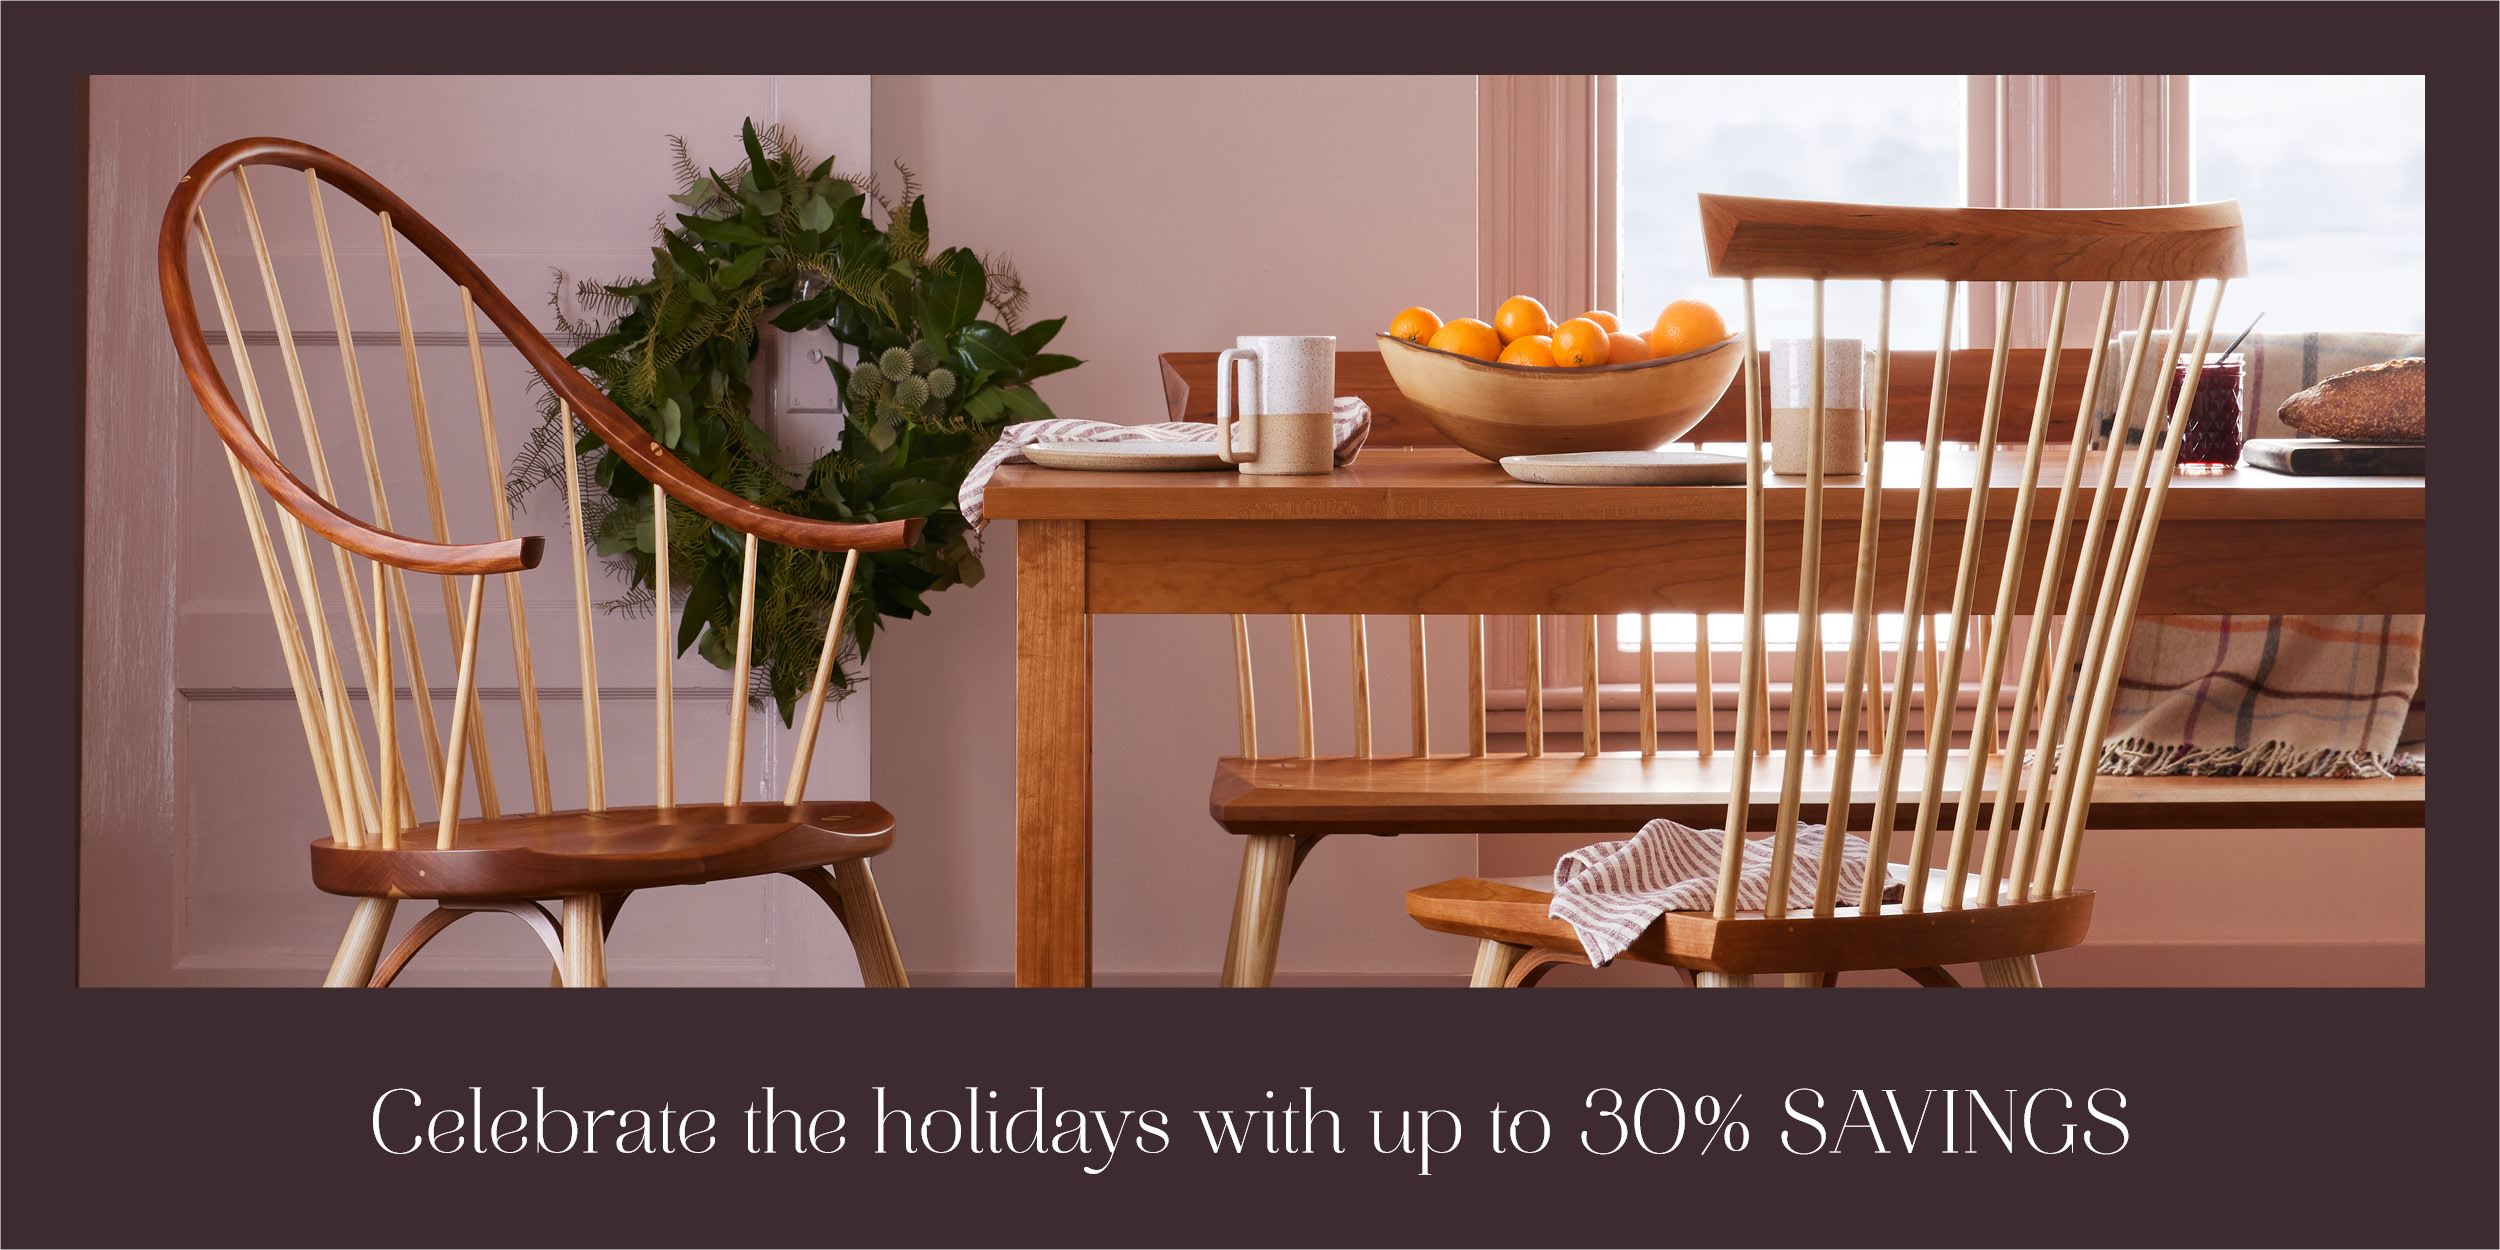 Celebrate the holidays with up to 30% savings - dining room furniture